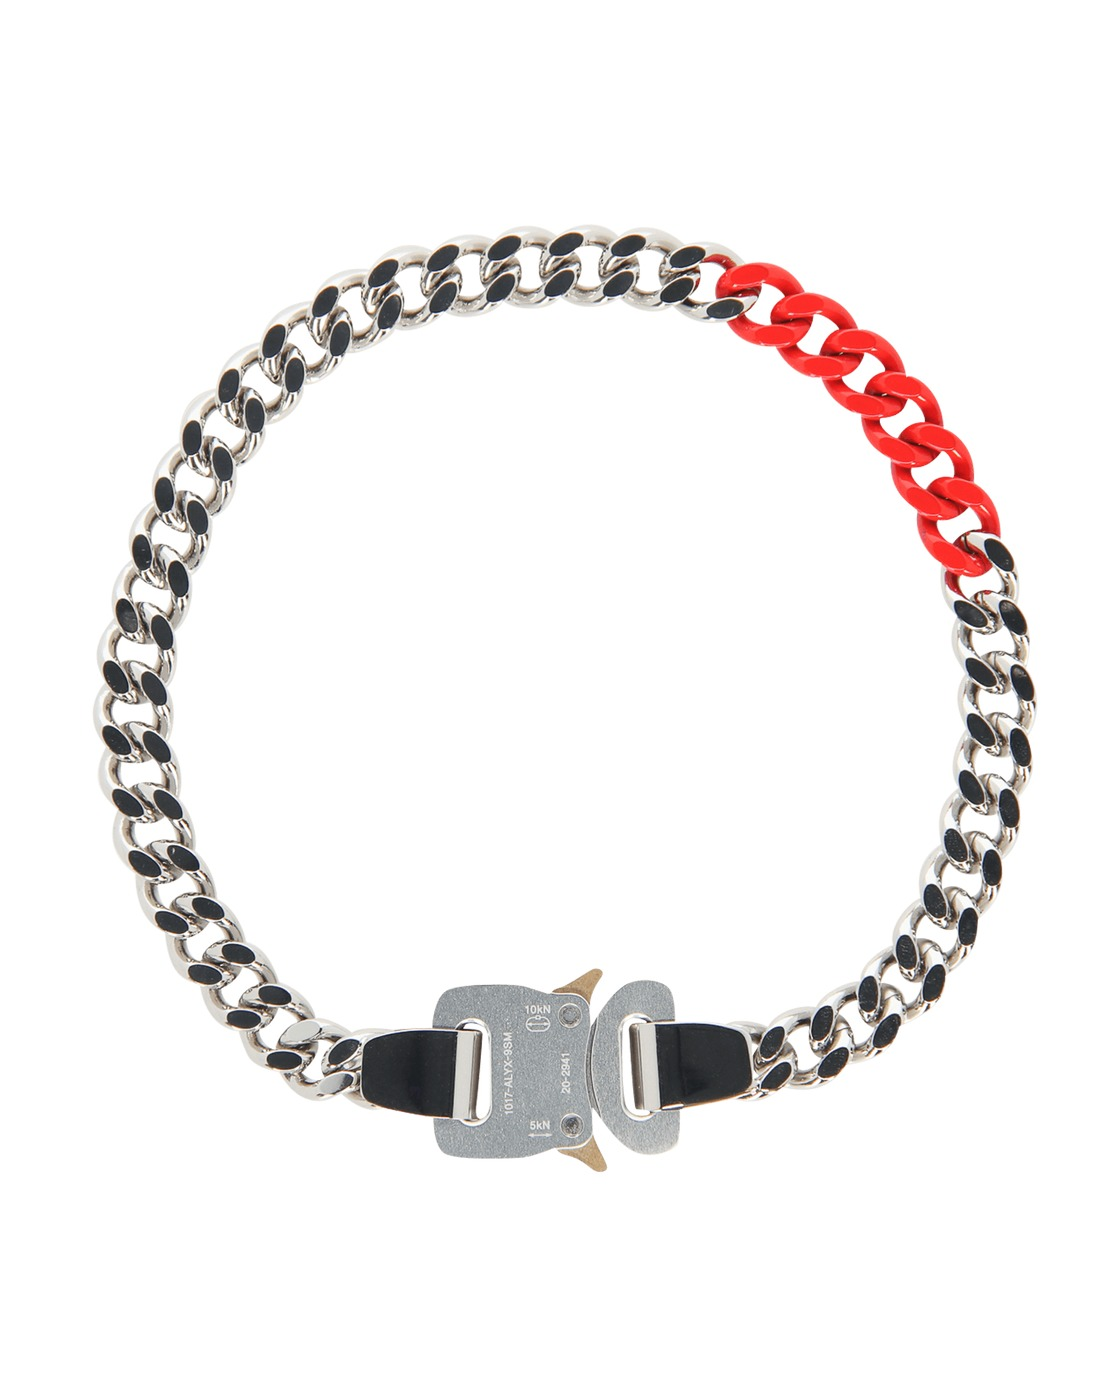 Photo: 1017 Alyx 9sm Colored Links Buckle Necklace Silver/Red